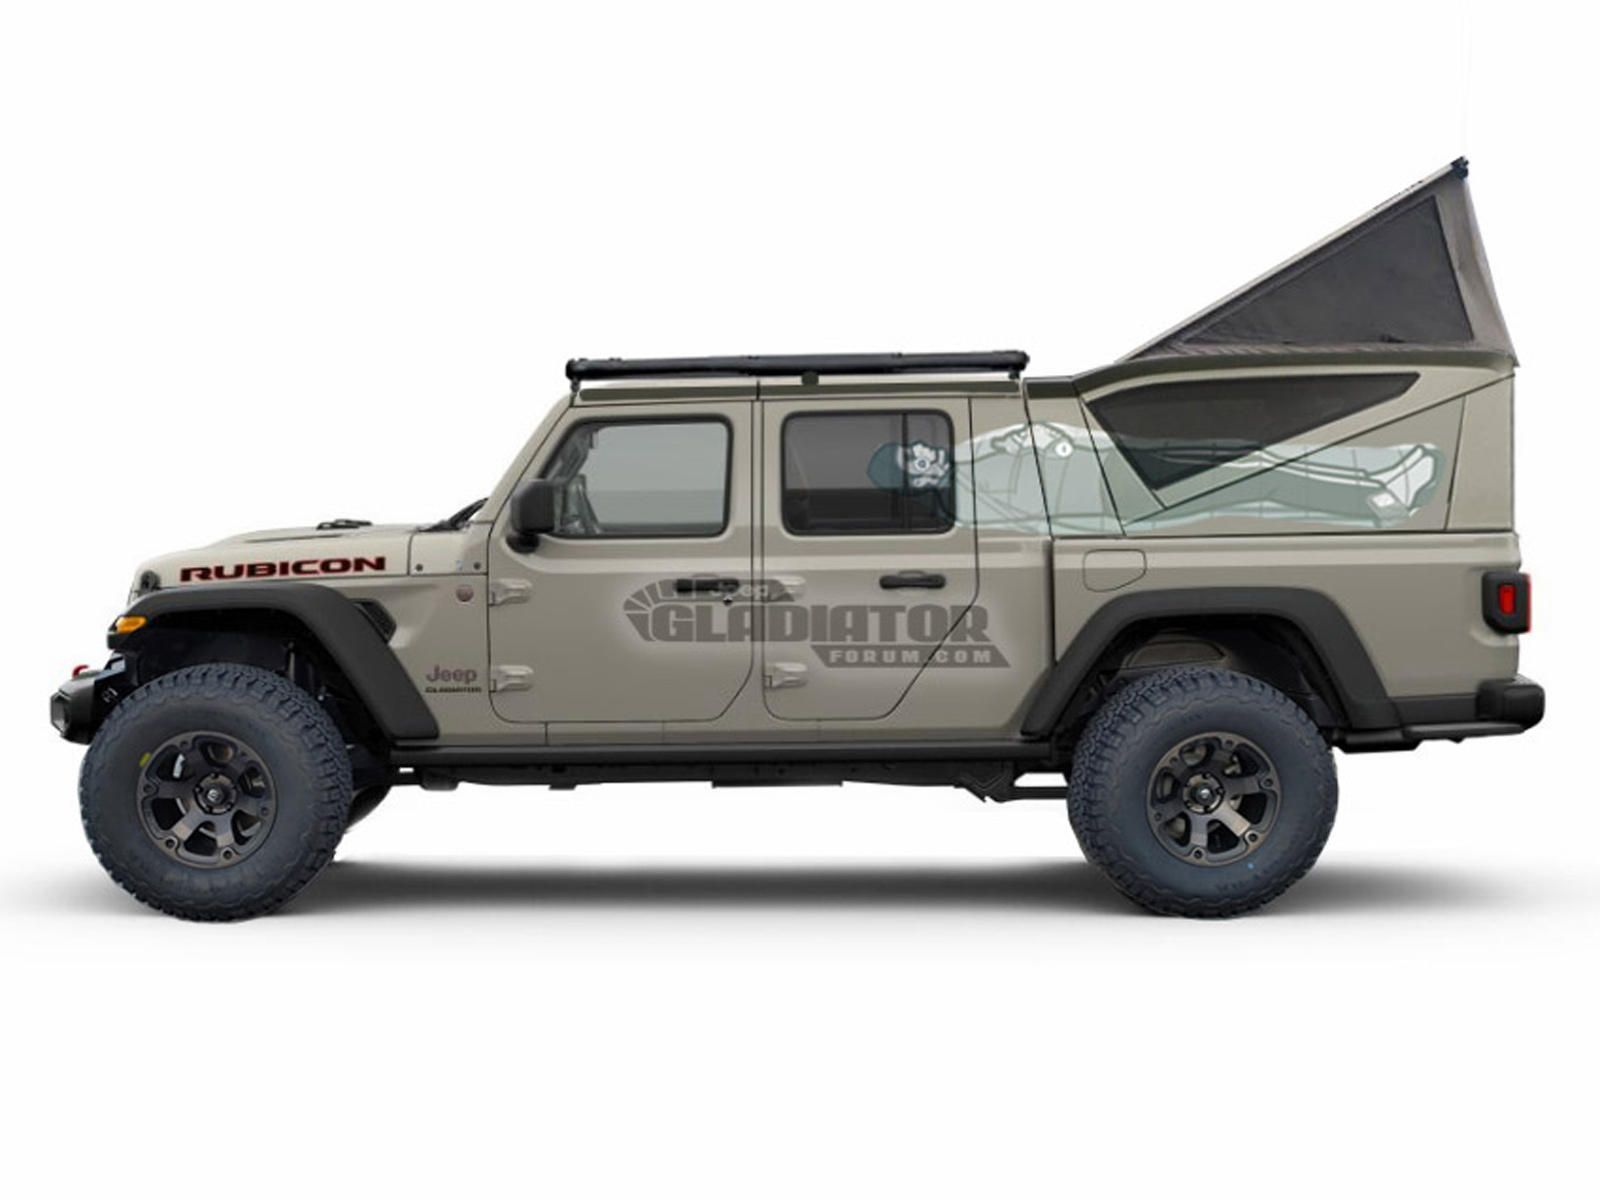 Get Ready For Jeep Gladiator Overland Adventures In 2020 Jeep